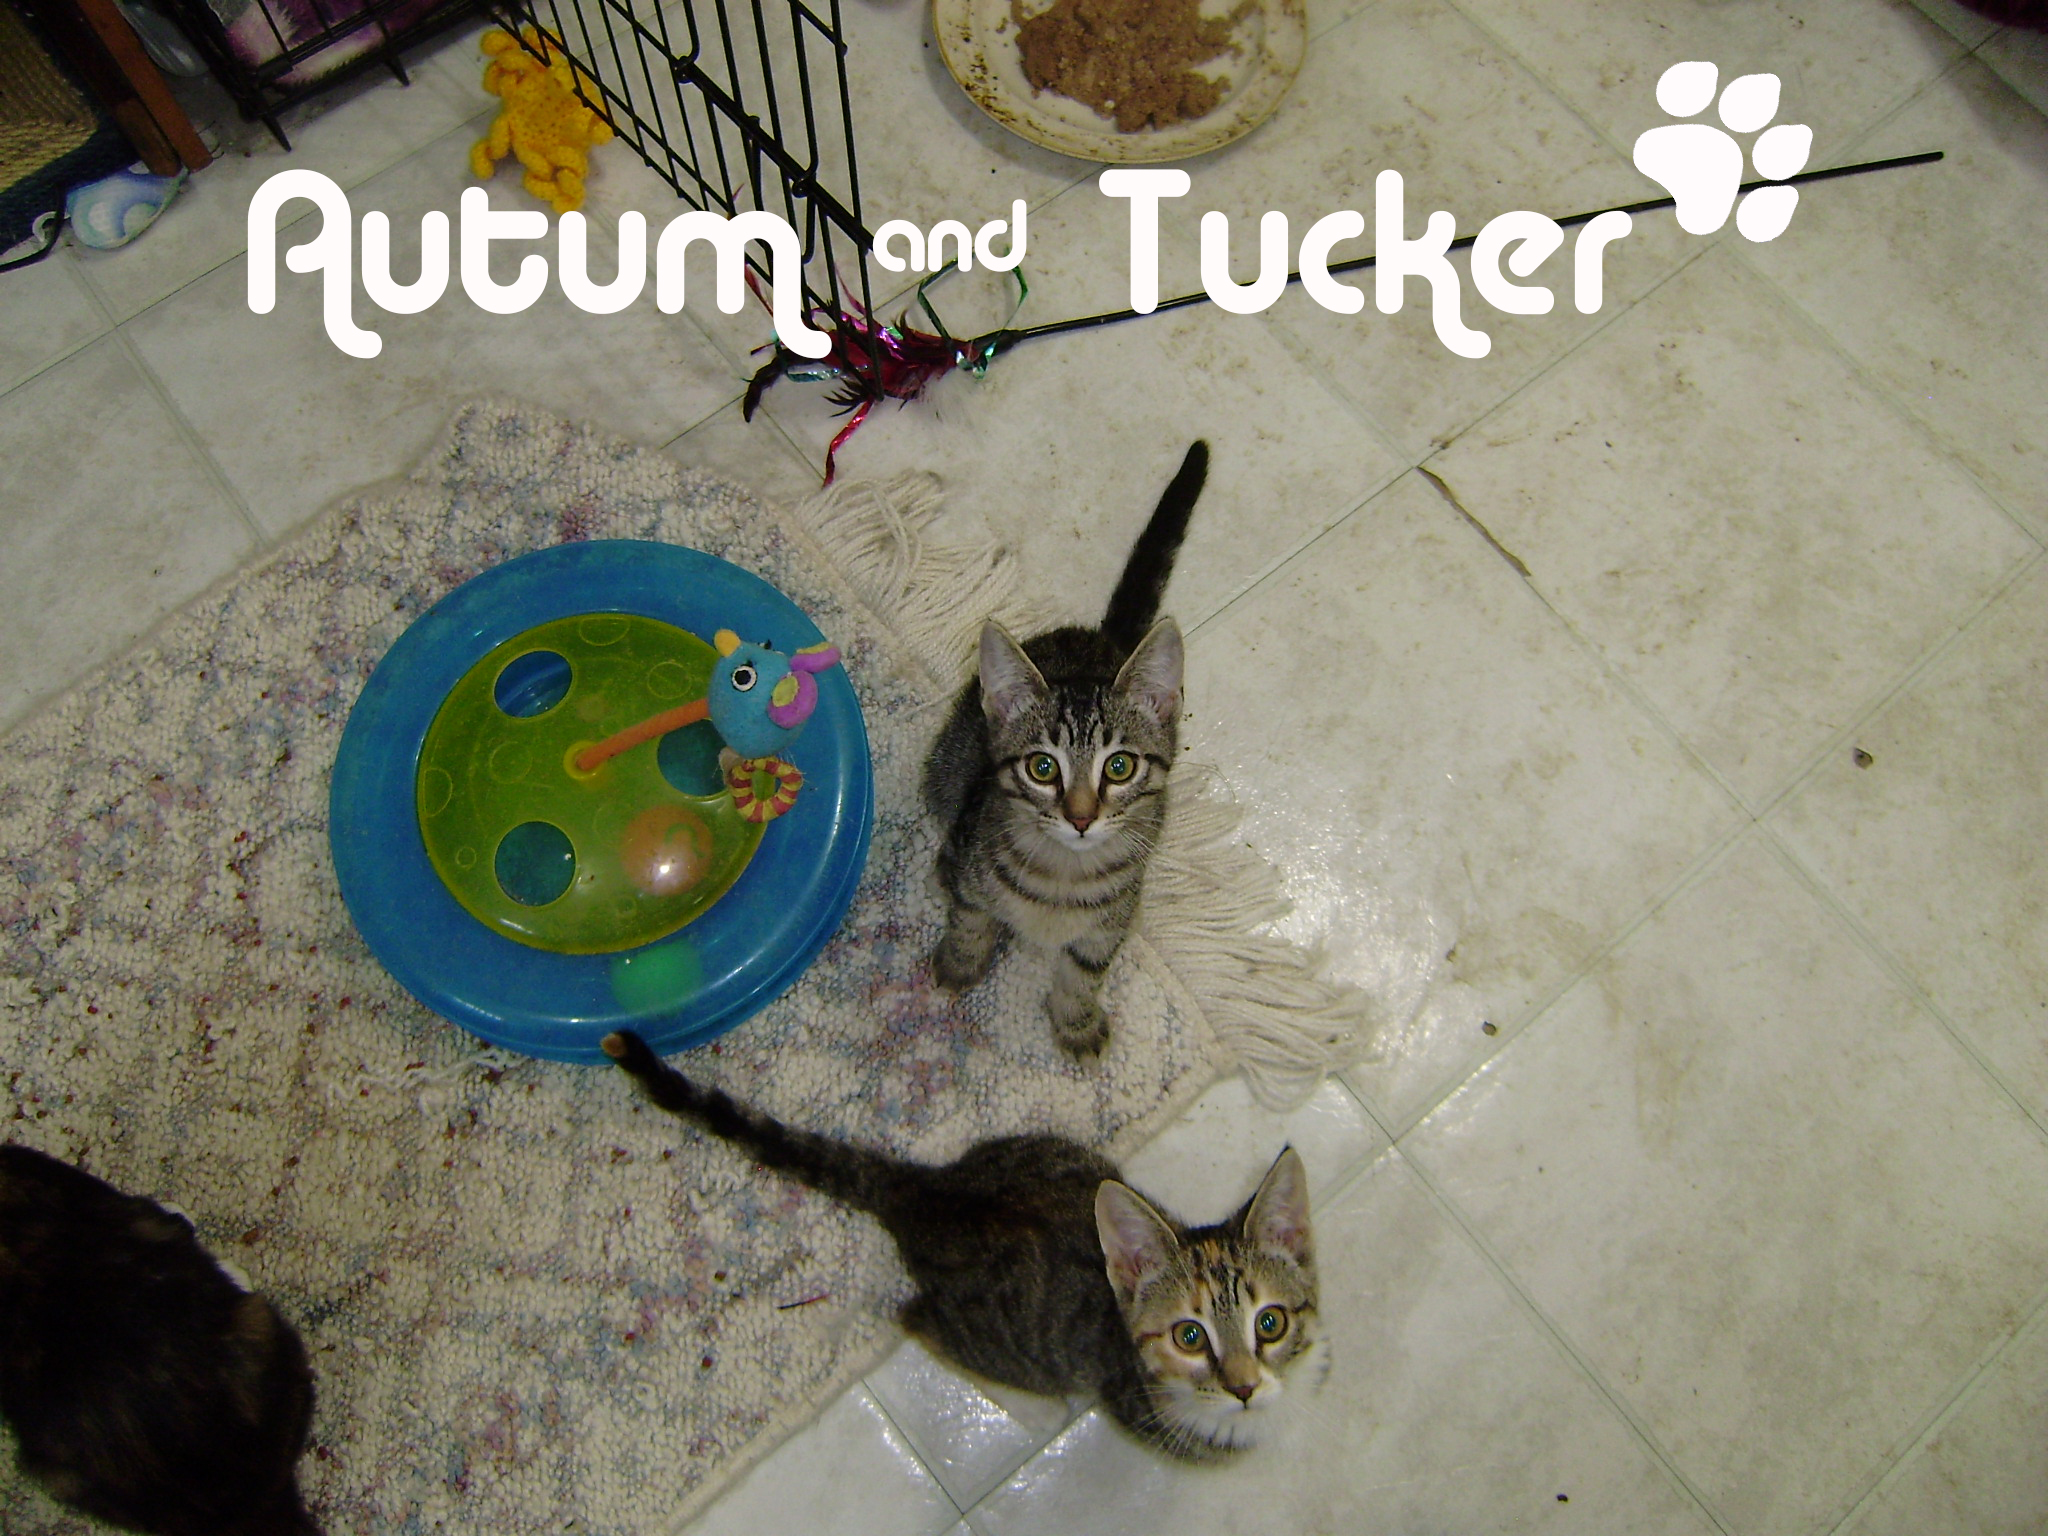 Autum and Tucker